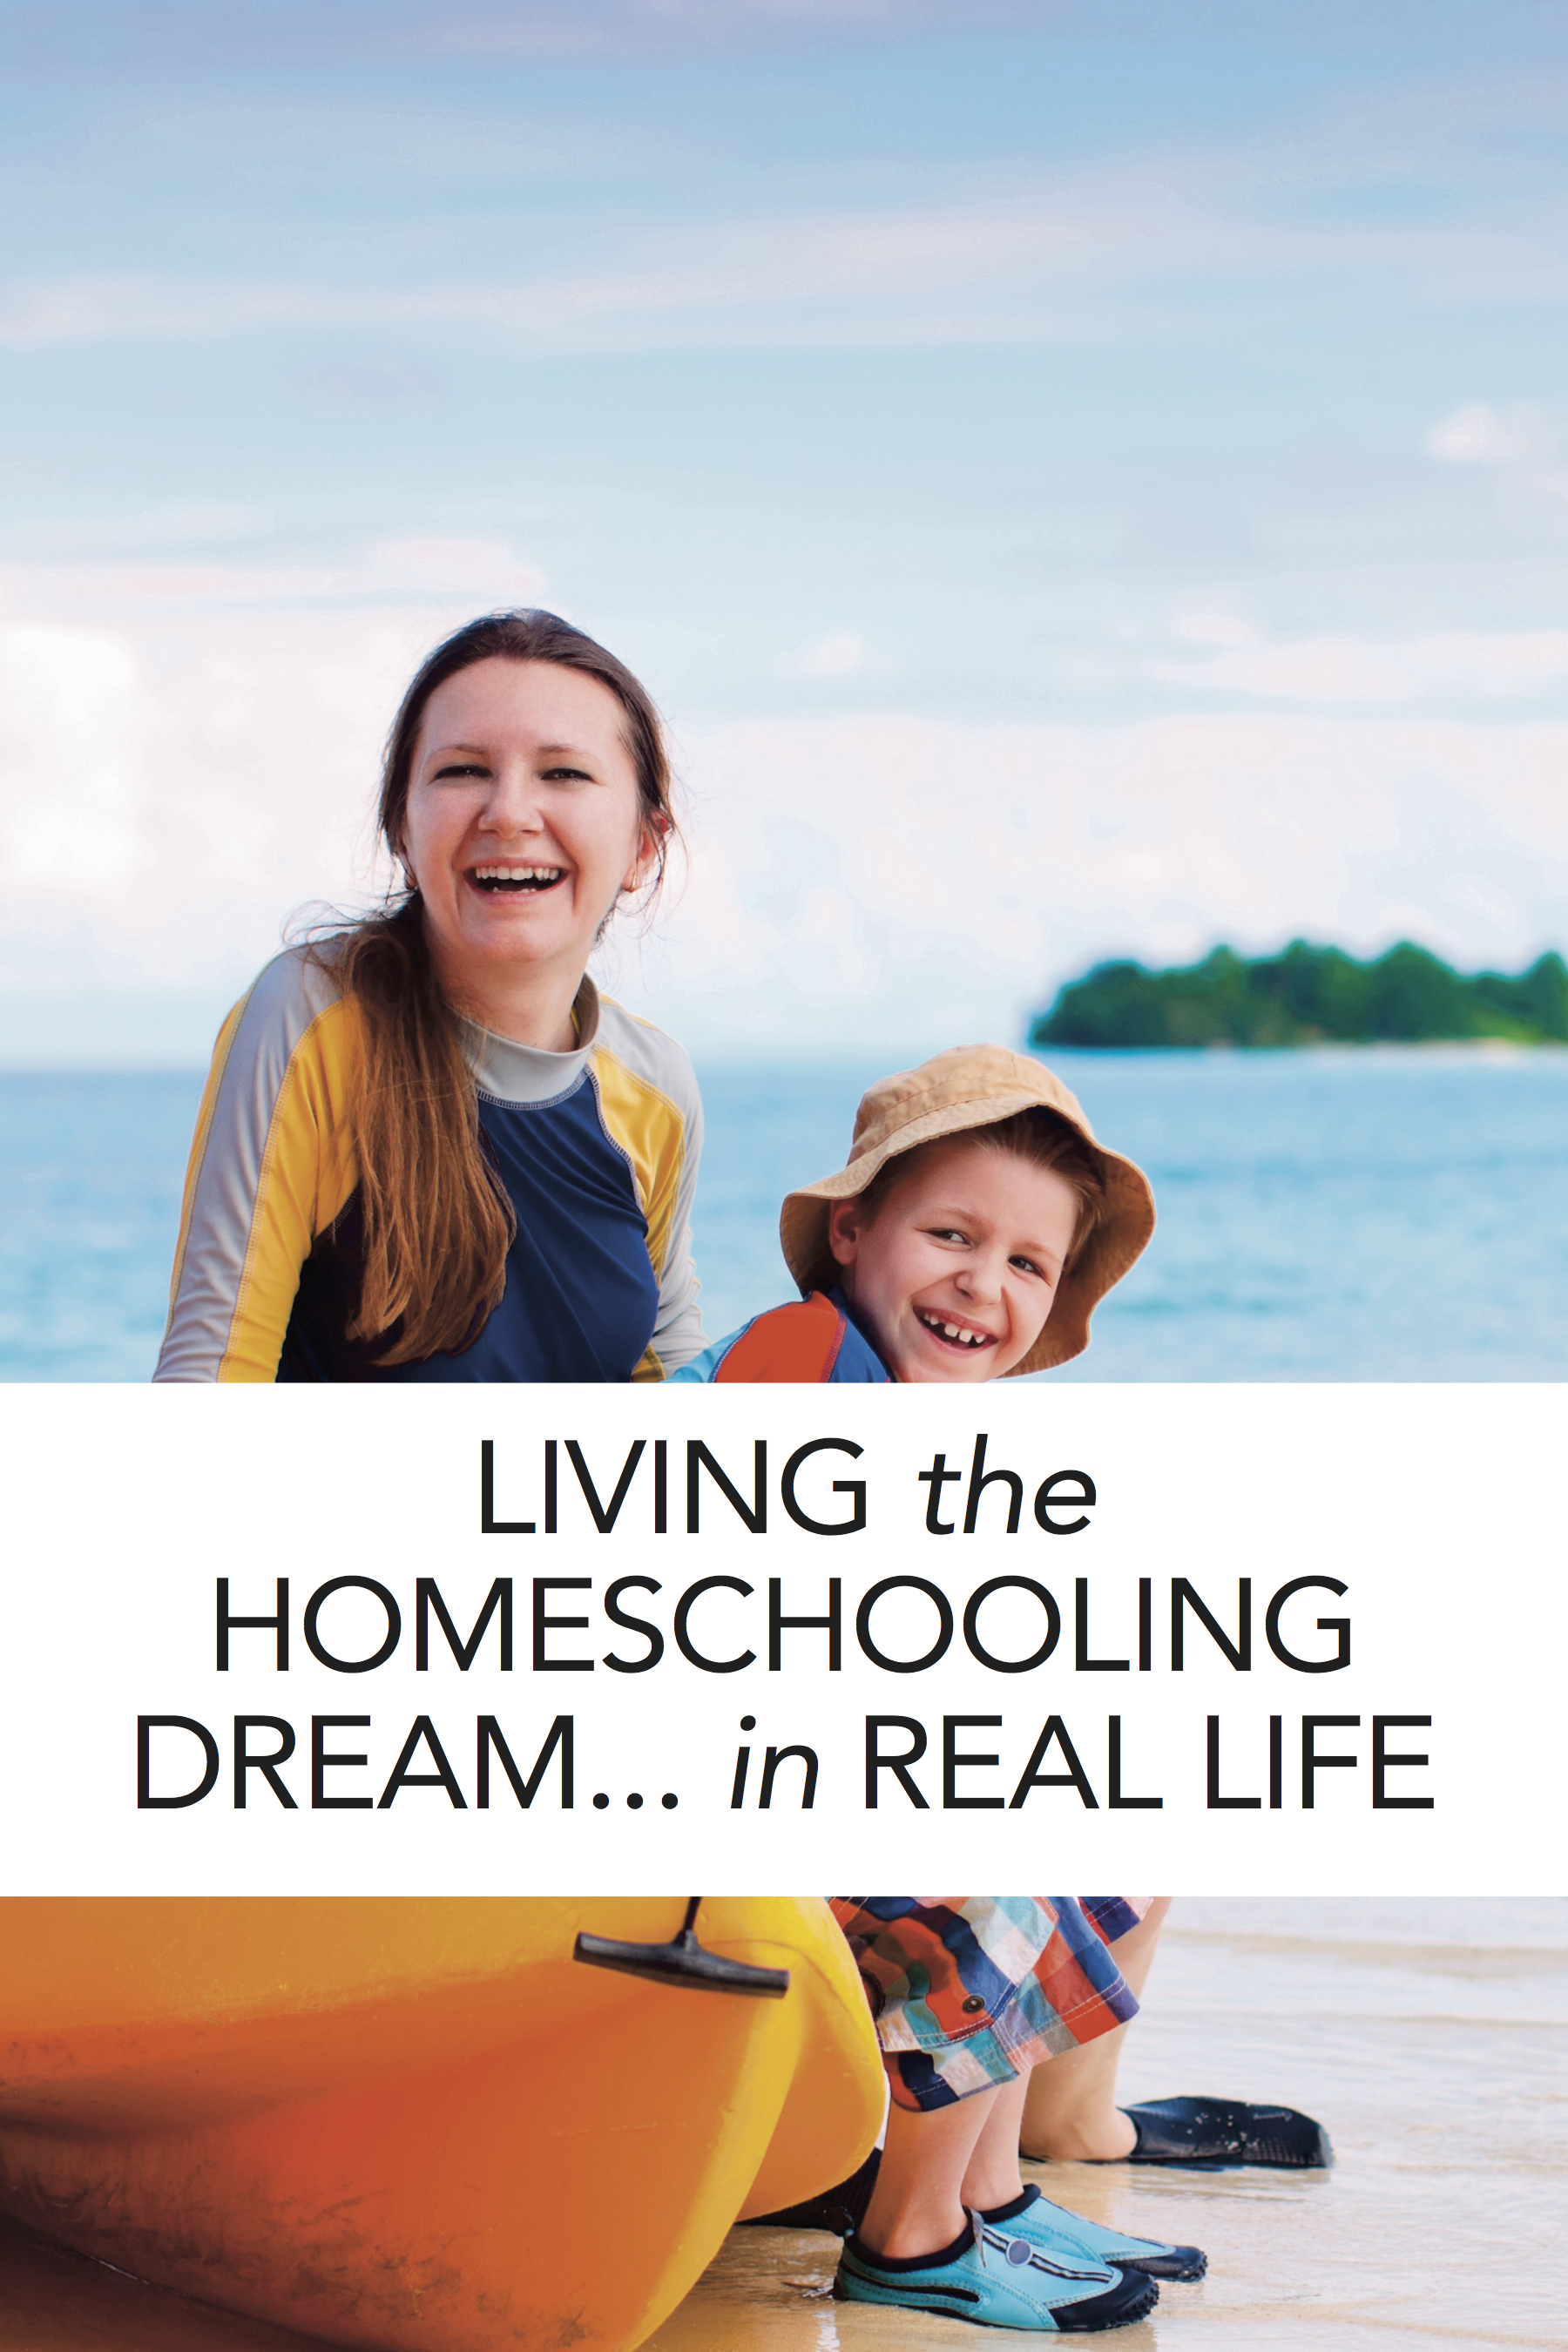 Homeschool dreams vs homeschool reality--great read about loving the life you're in!